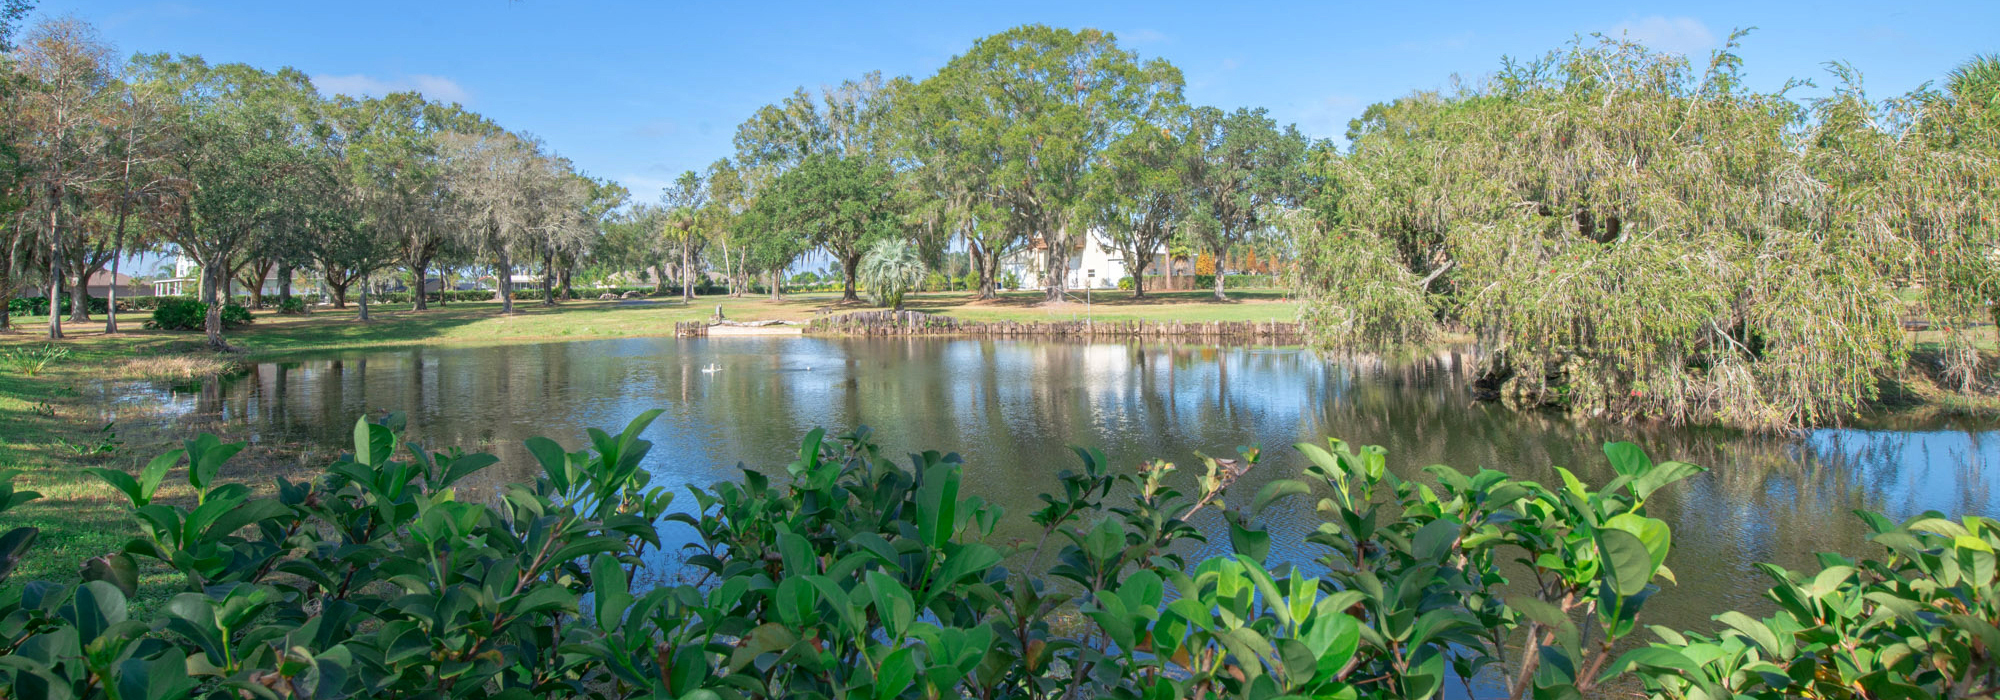 Holloway Hammock Estate Homesite 8 Acres in Plant City, FL